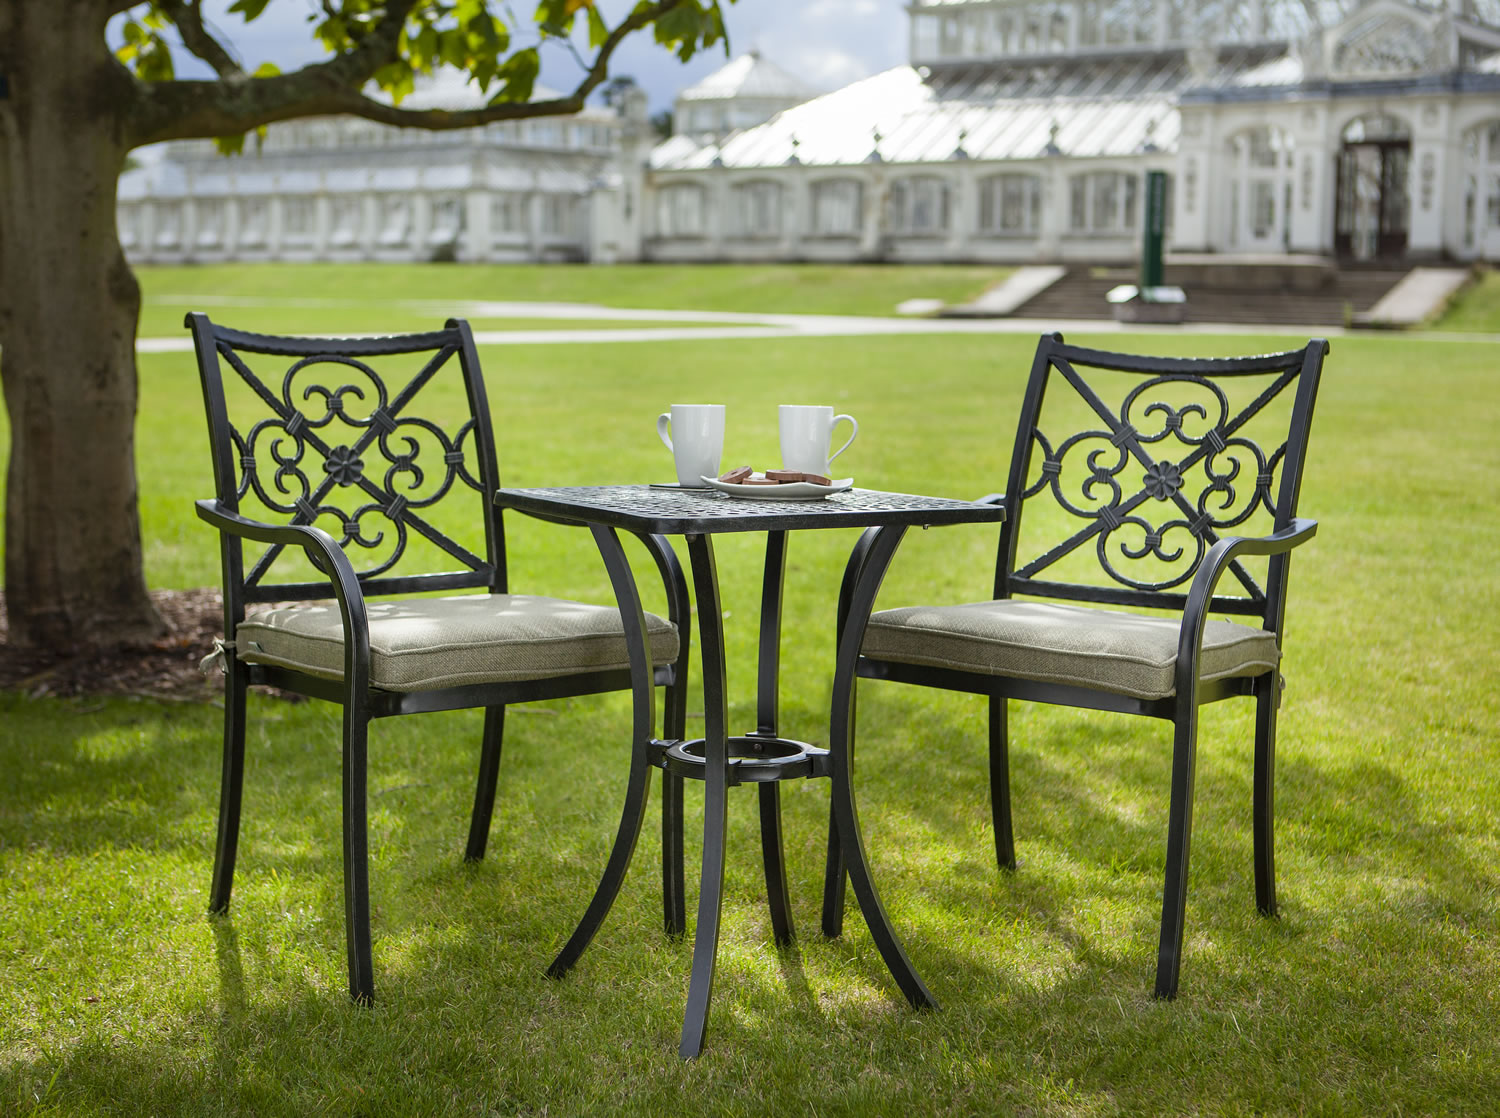 Garden furniture hartman 2017 2018 best cars reviews for Gardening 4 less reviews